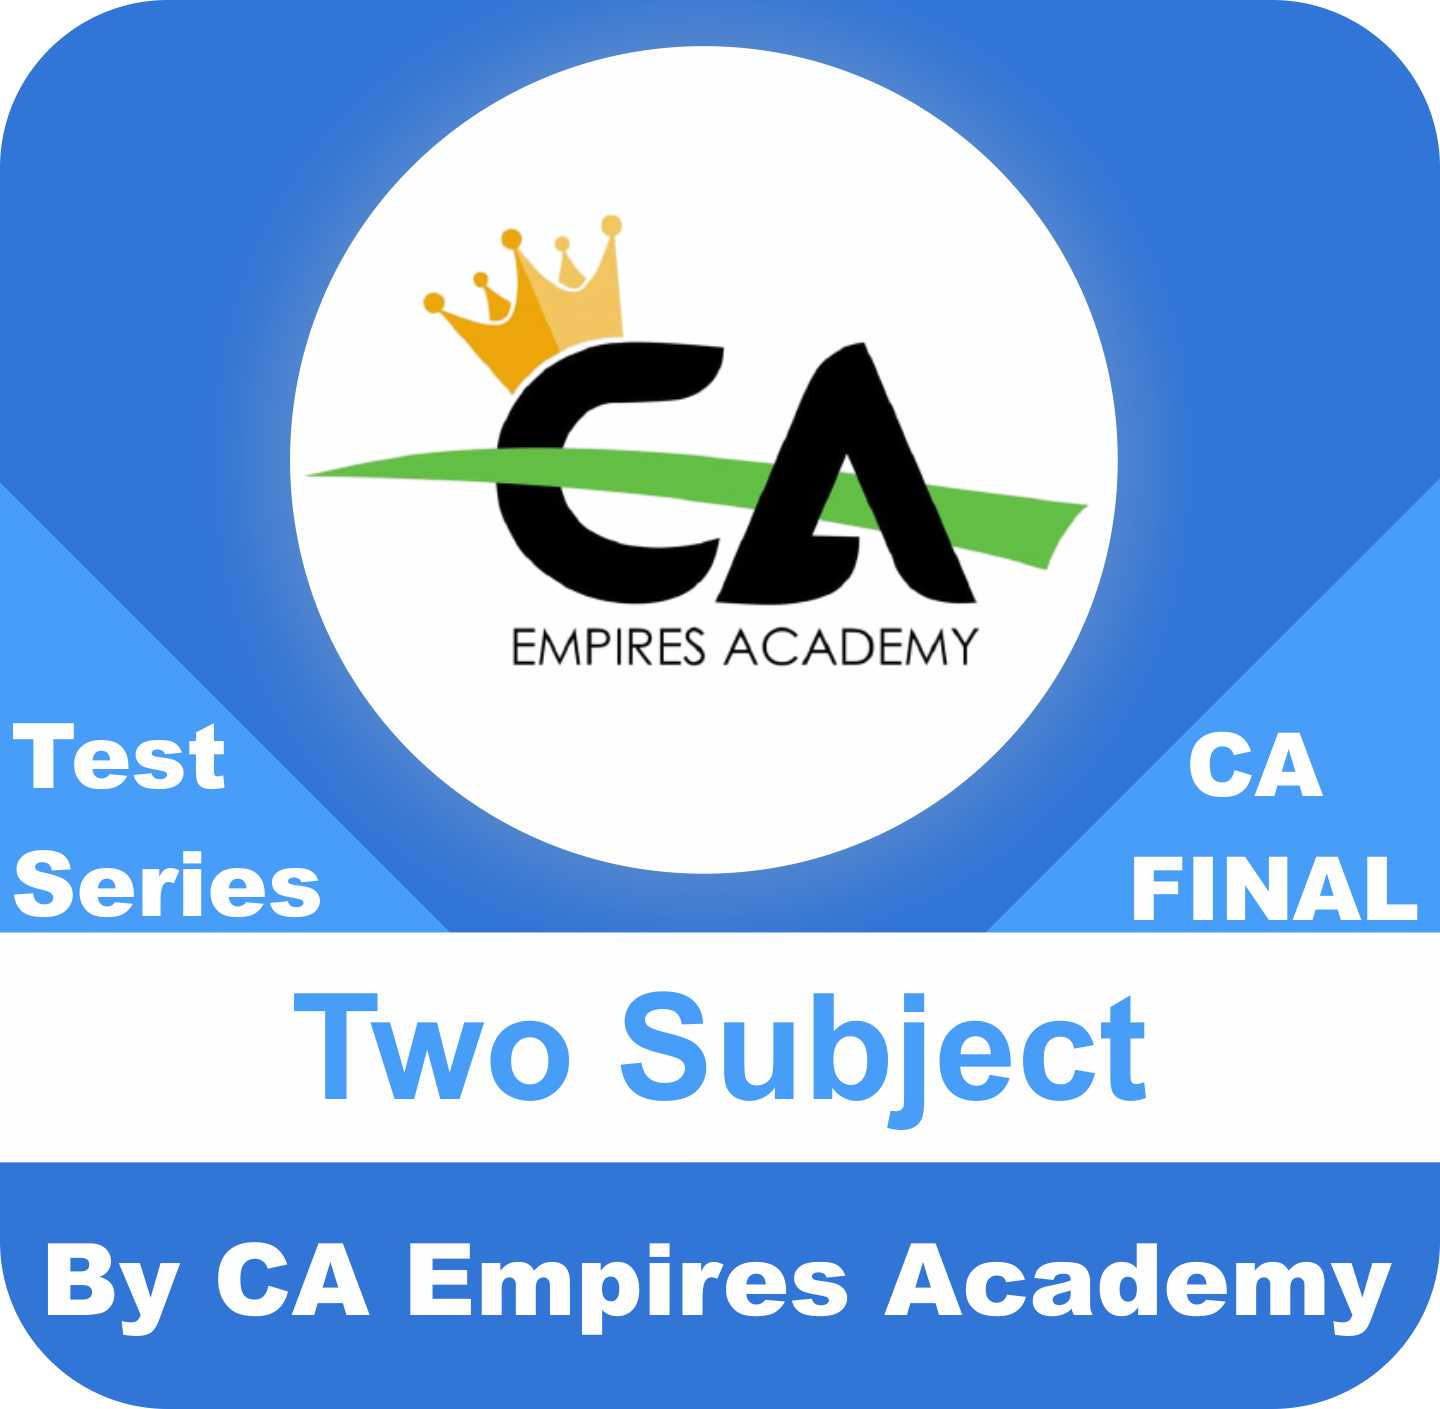 CA Final Any Two Subject Test Series in Gold Plan by CA Empires Academy